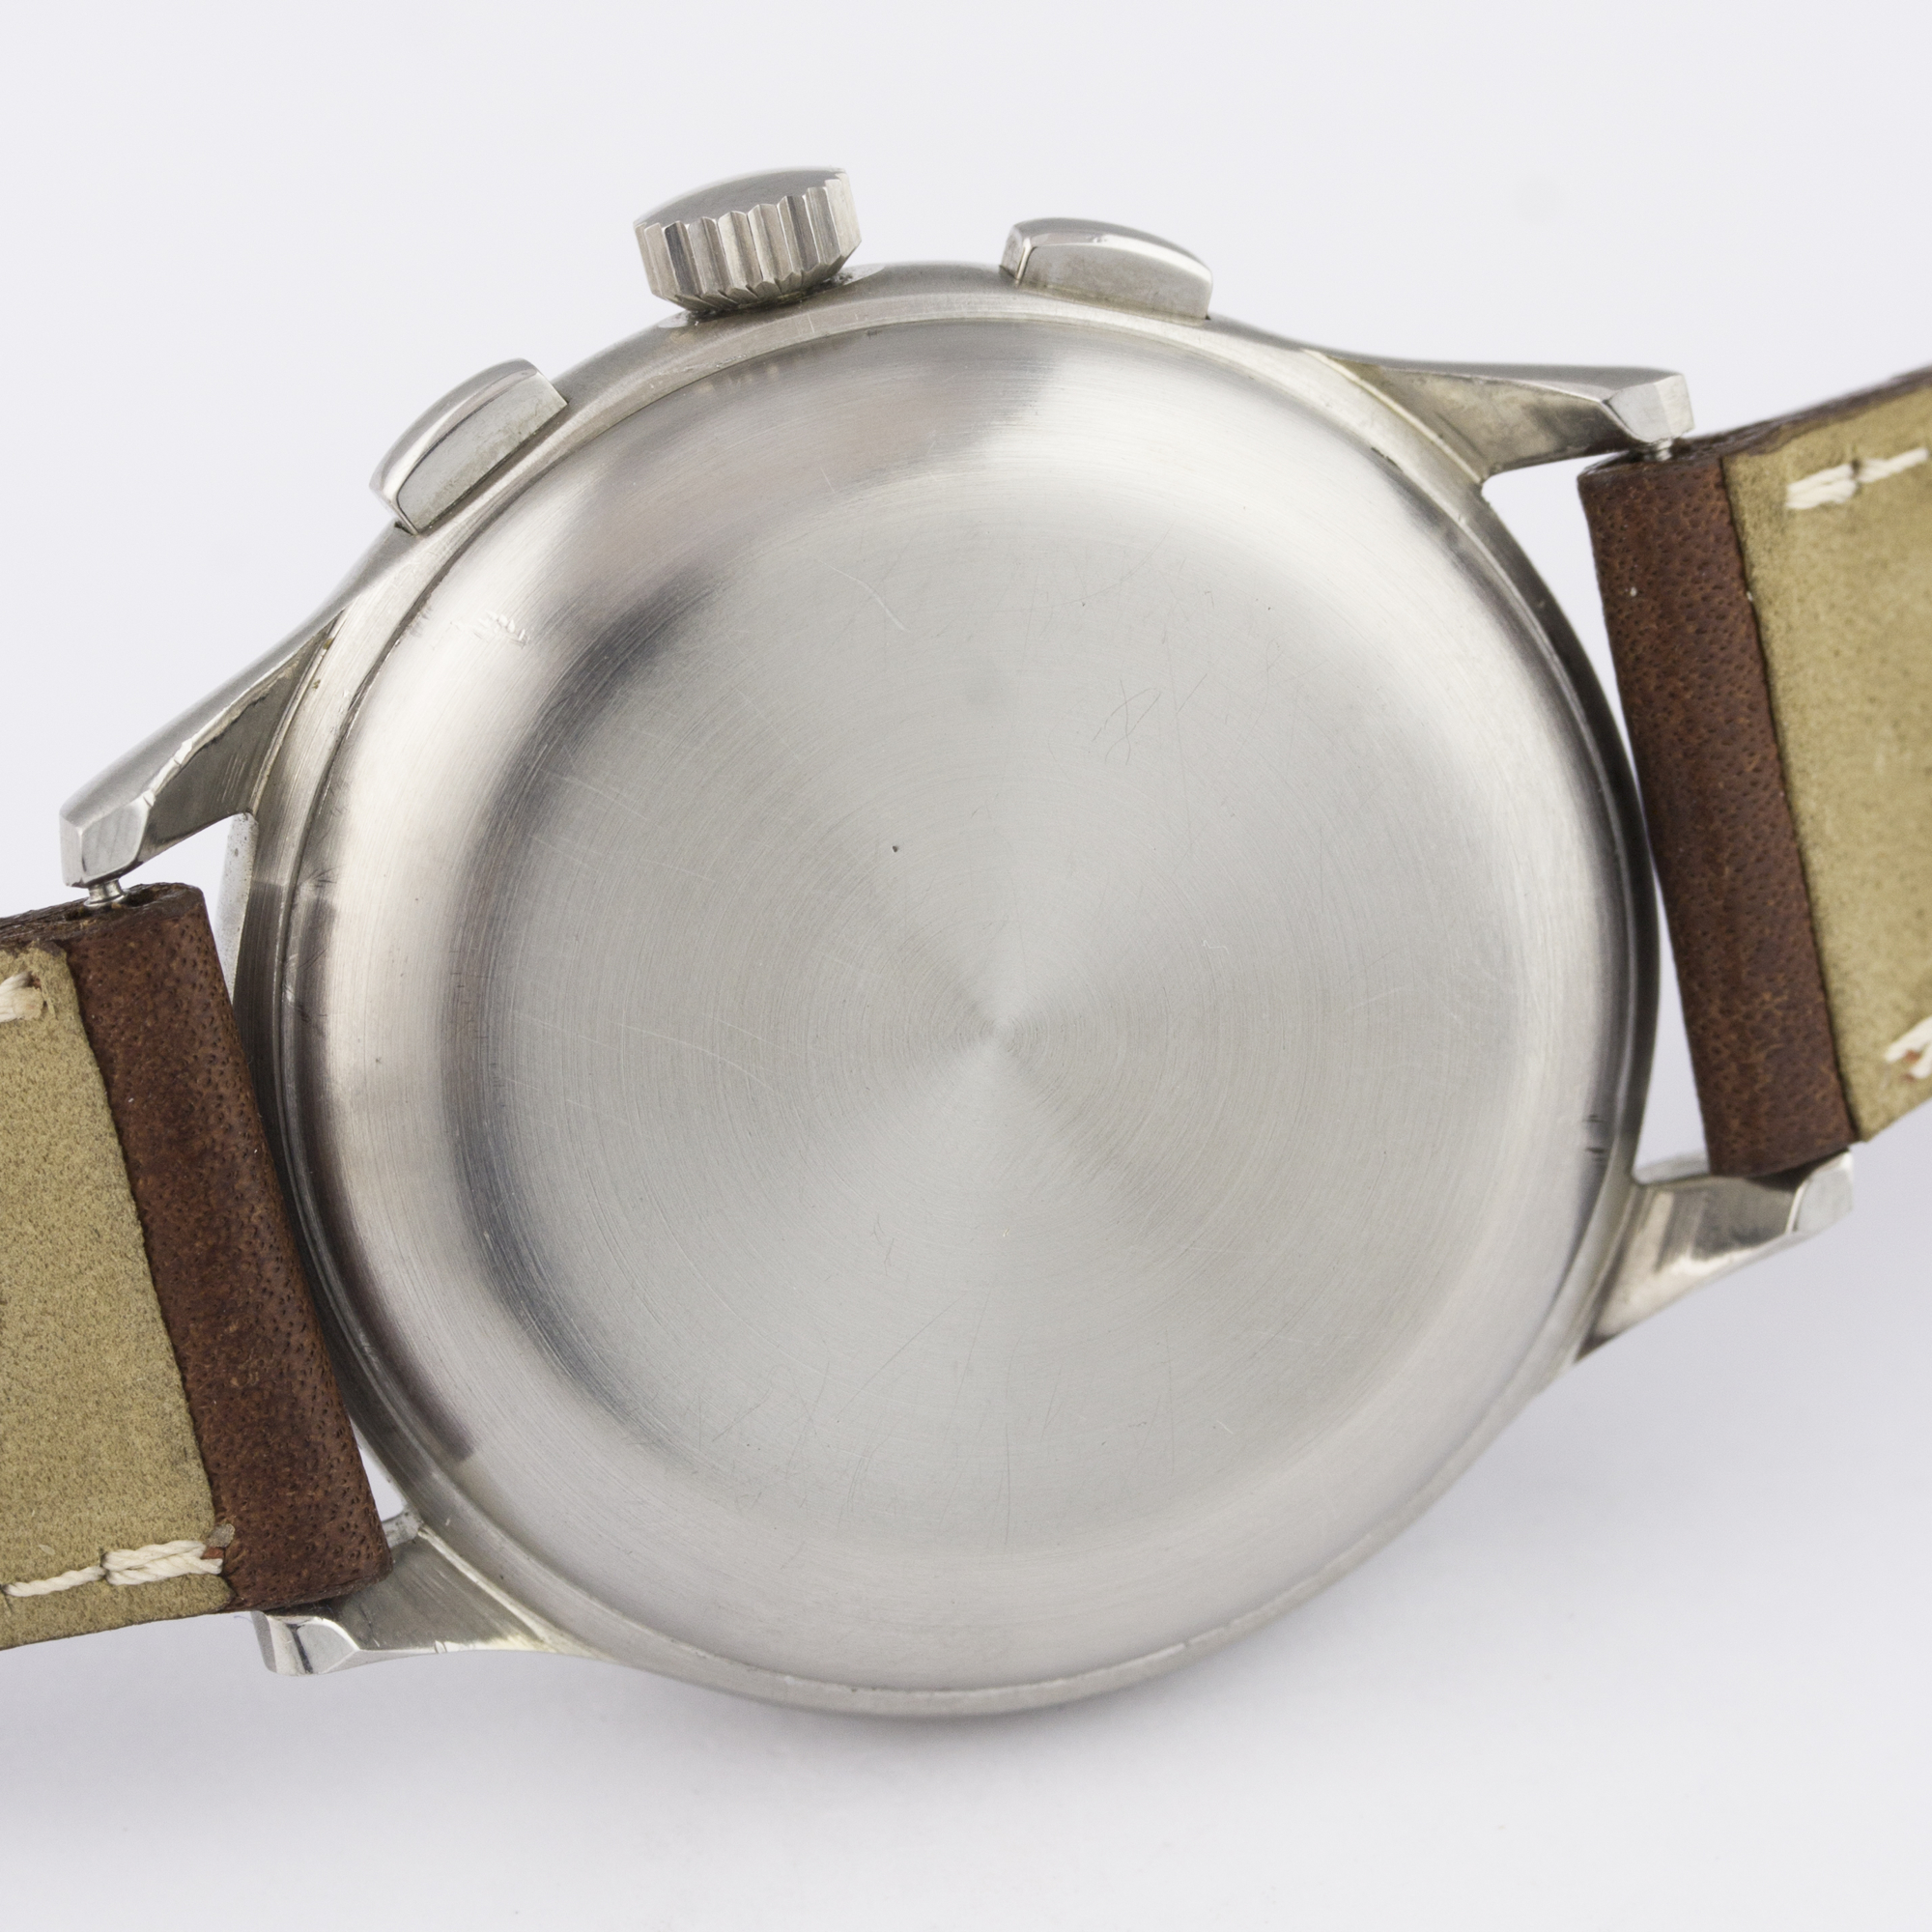 A RARE GENTLEMAN'S STAINLESS STEEL MINERVA DECIMAL CHRONOGRAPH WRIST WATCH CIRCA 1950s D: Silver - Image 7 of 9